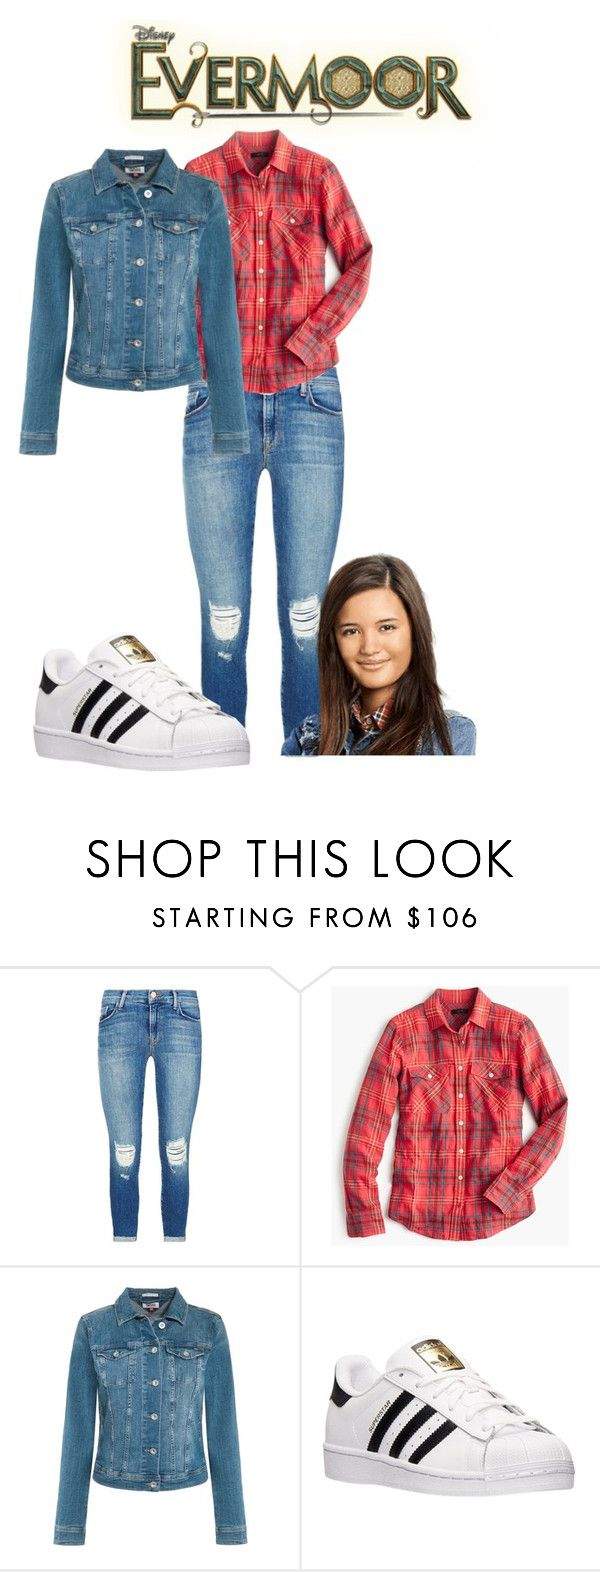 """evermoor"" by maria-look ❤ liked on Polyvore featuring J Brand, J.Crew, Tommy Hilfiger and adidas"